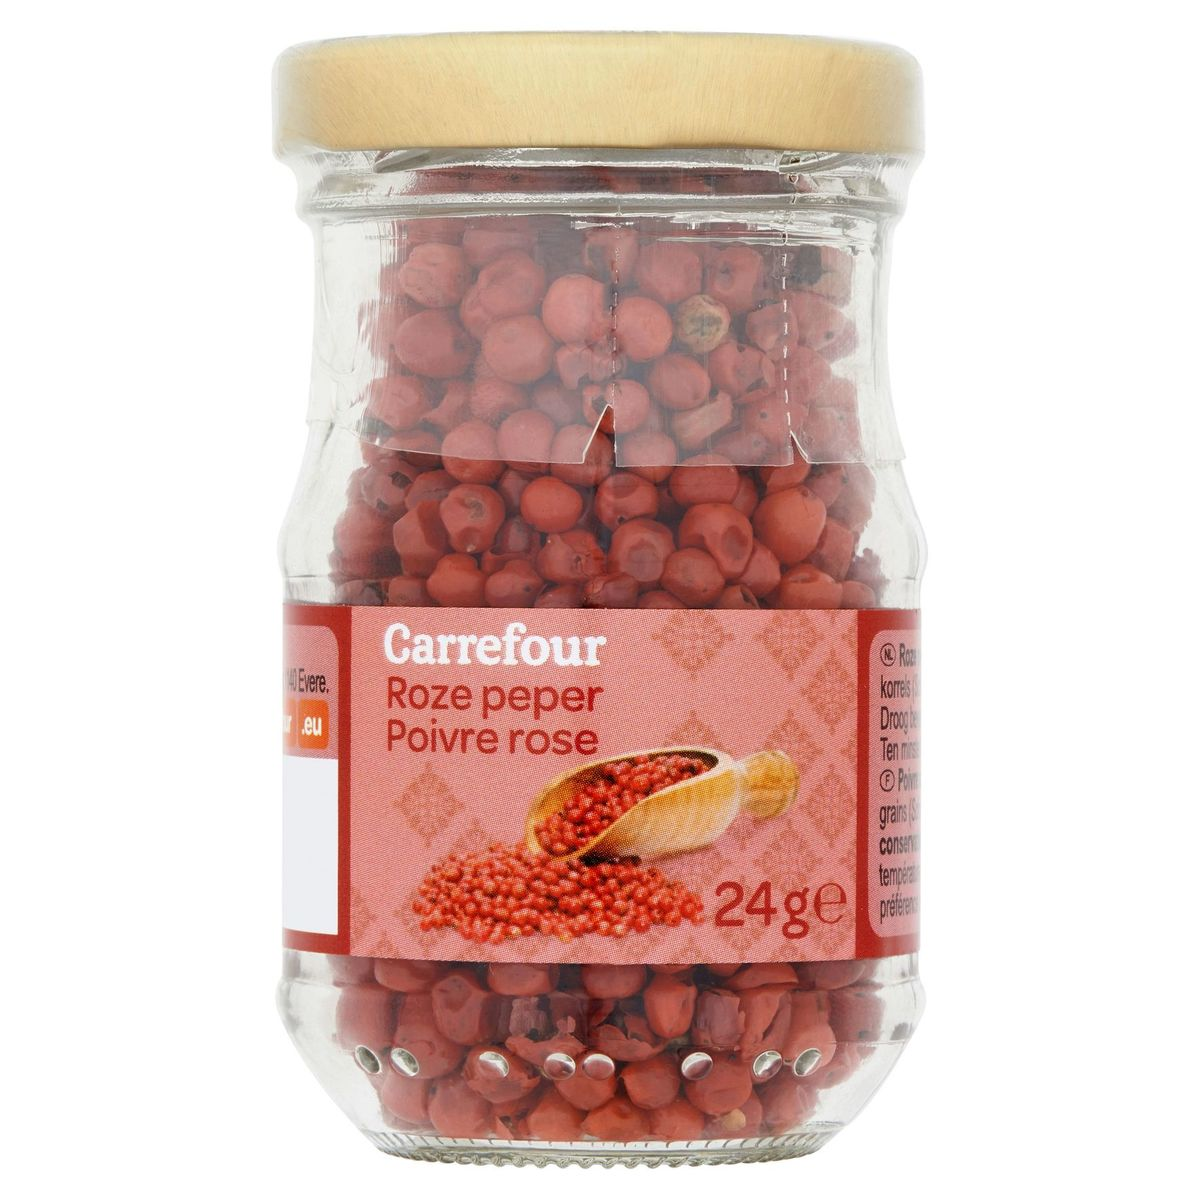 Carrefour Roze Peper 24 g